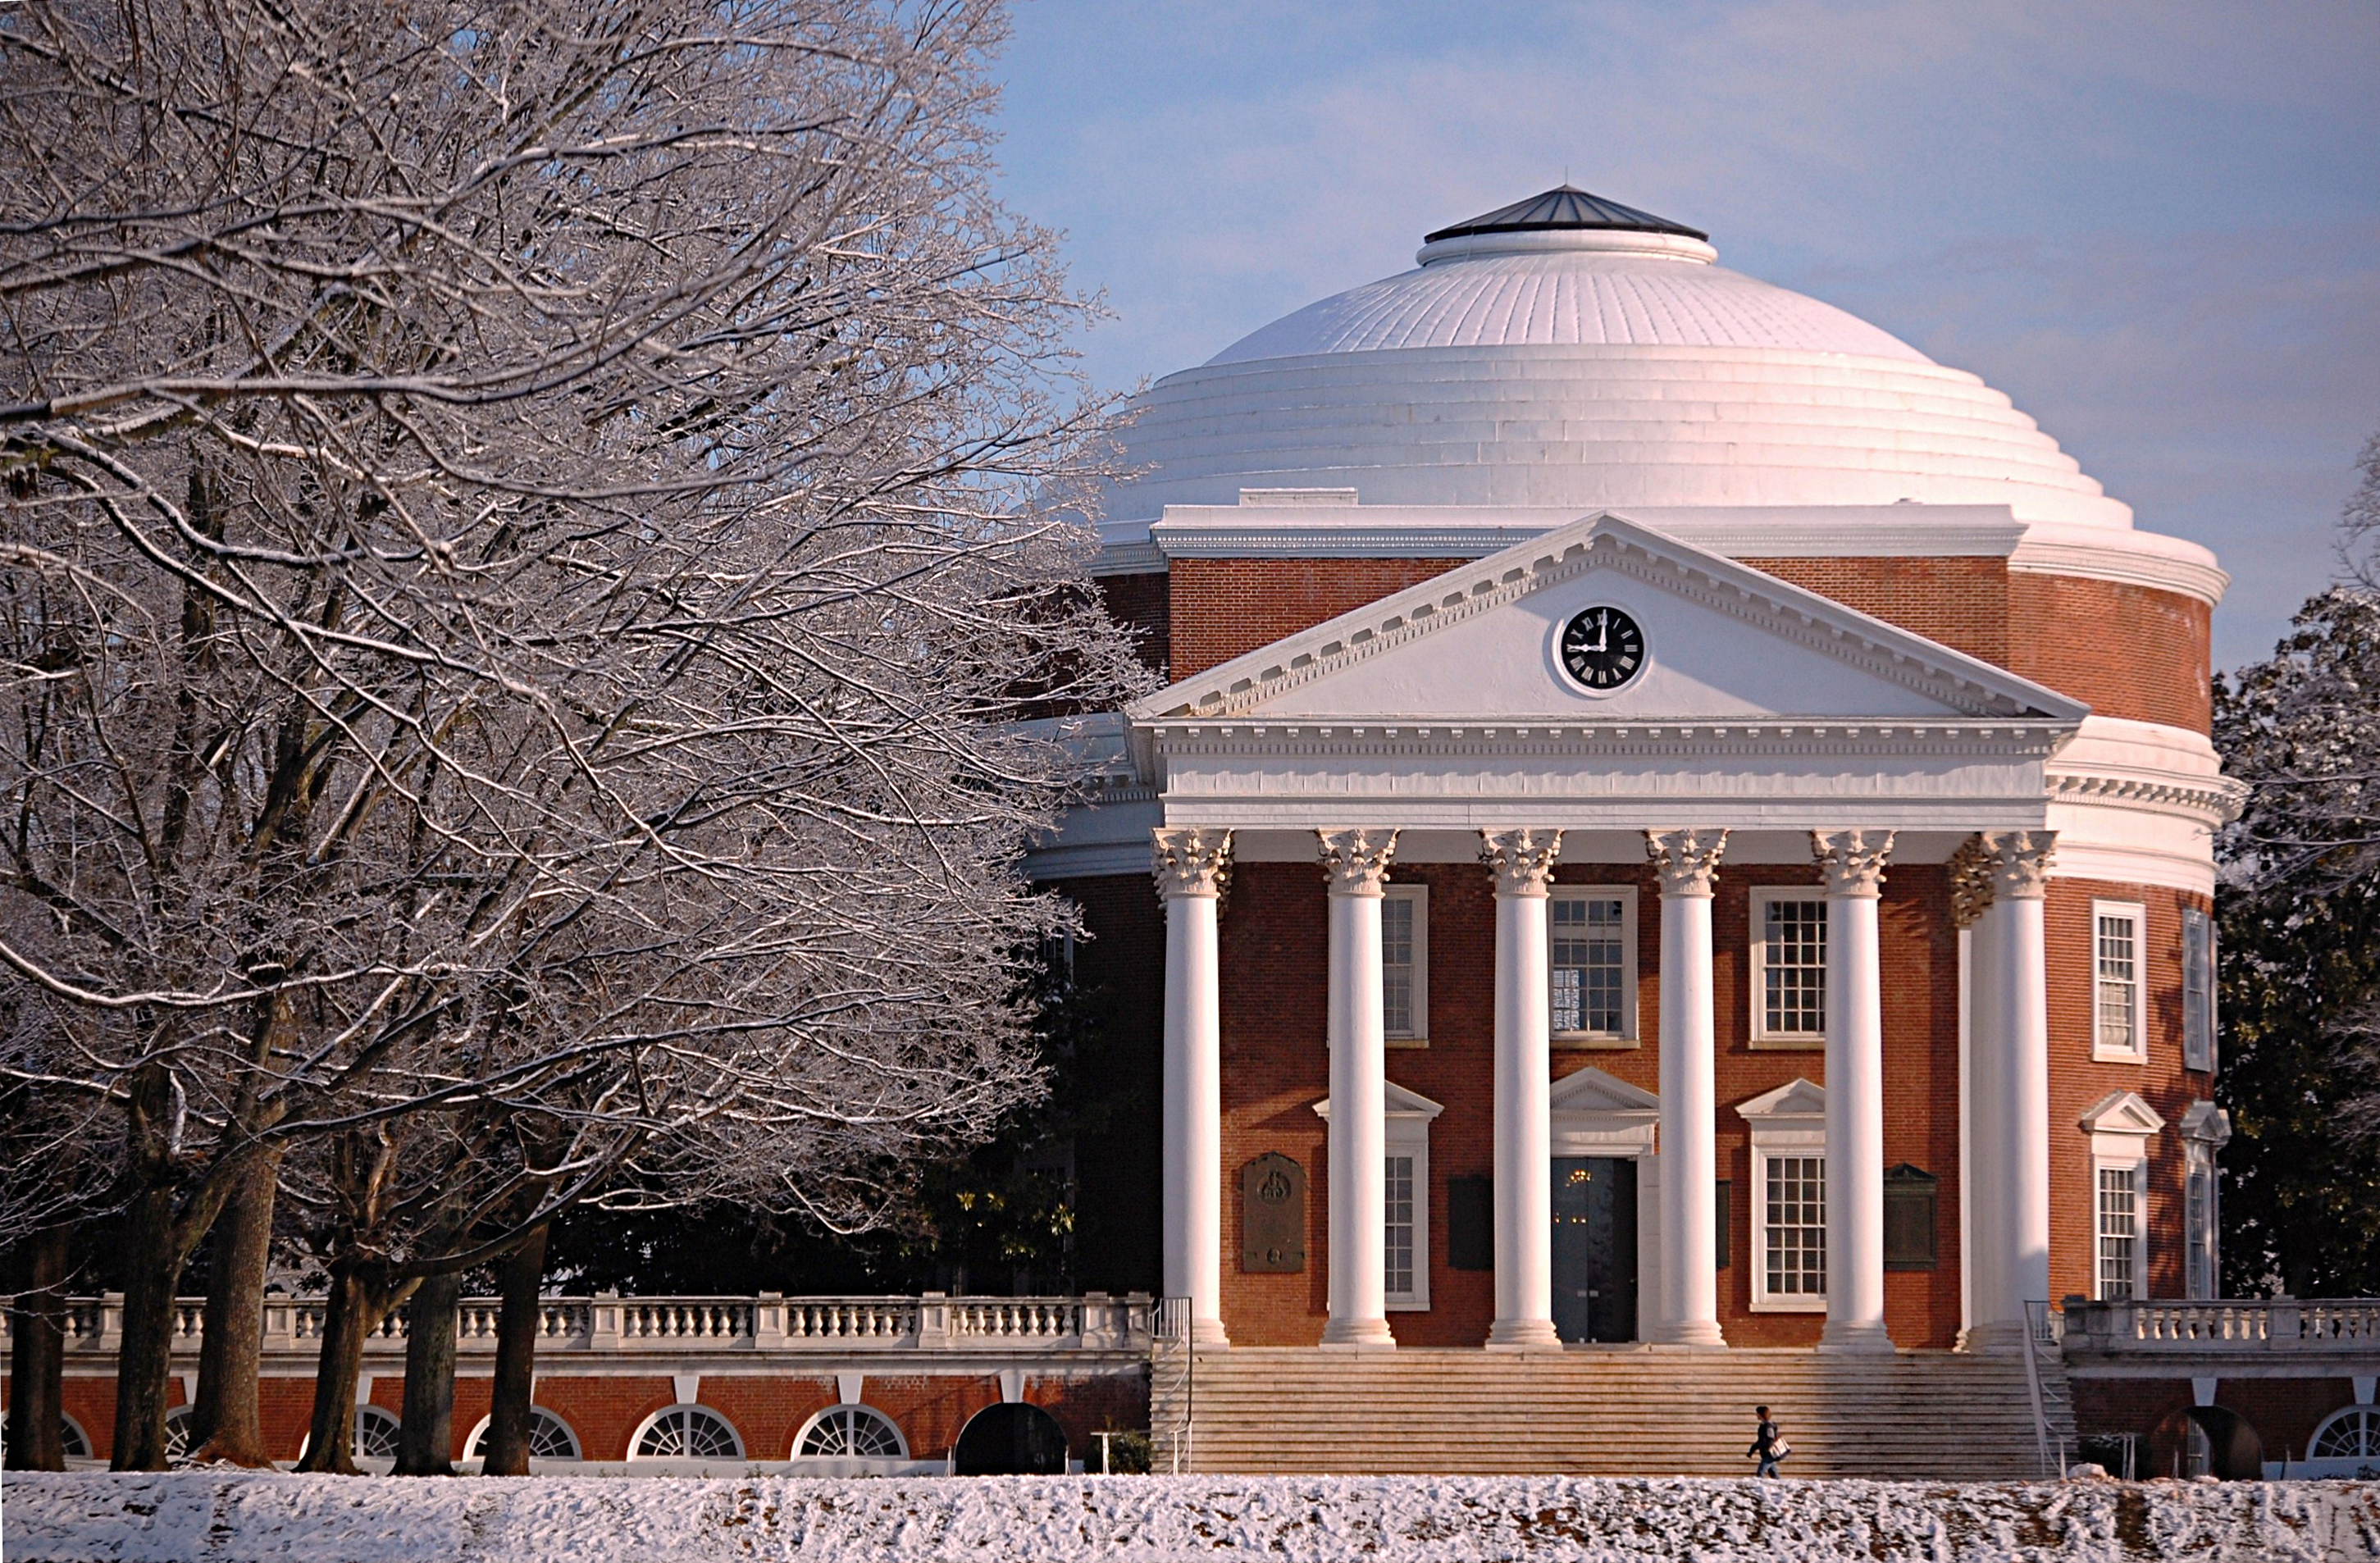 The University of Virginia, a World Heritage Site, was founded by President Thomas Jefferson